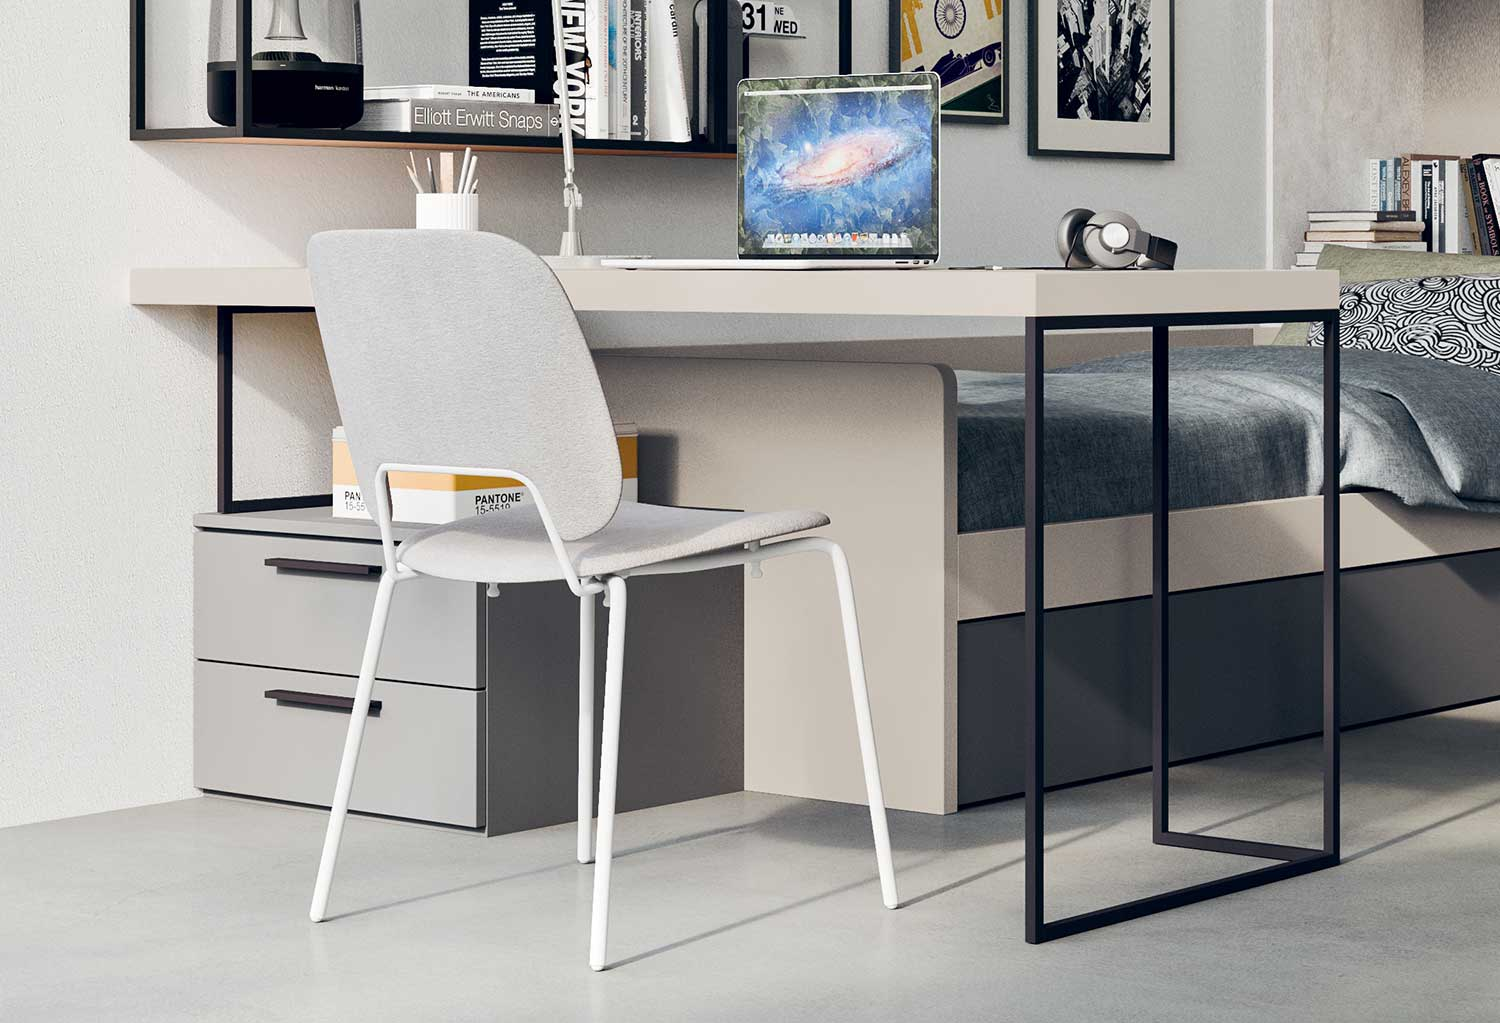 Desk with metal leg on one side and drawer unit on the other